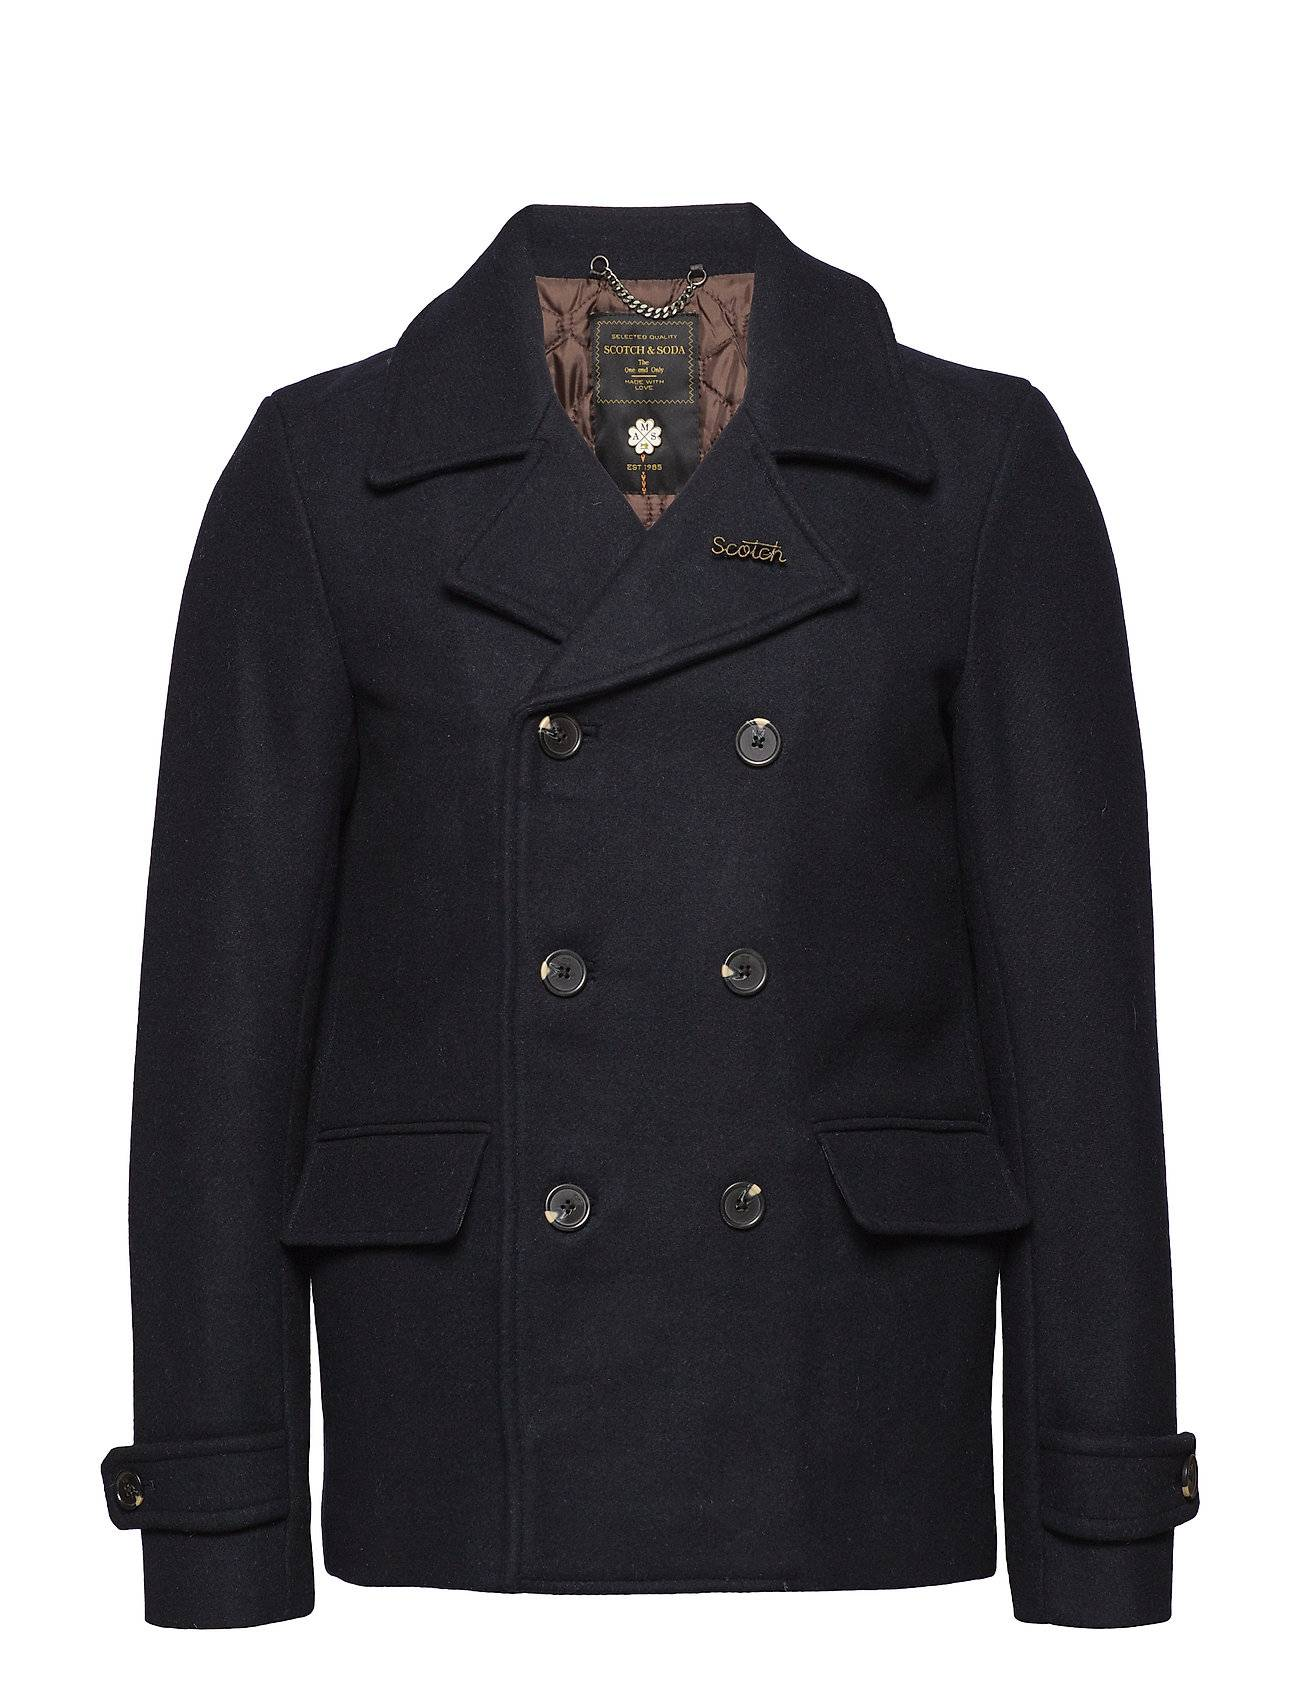 Scotch & Soda Classic Caban Jacket With Quilted Lining